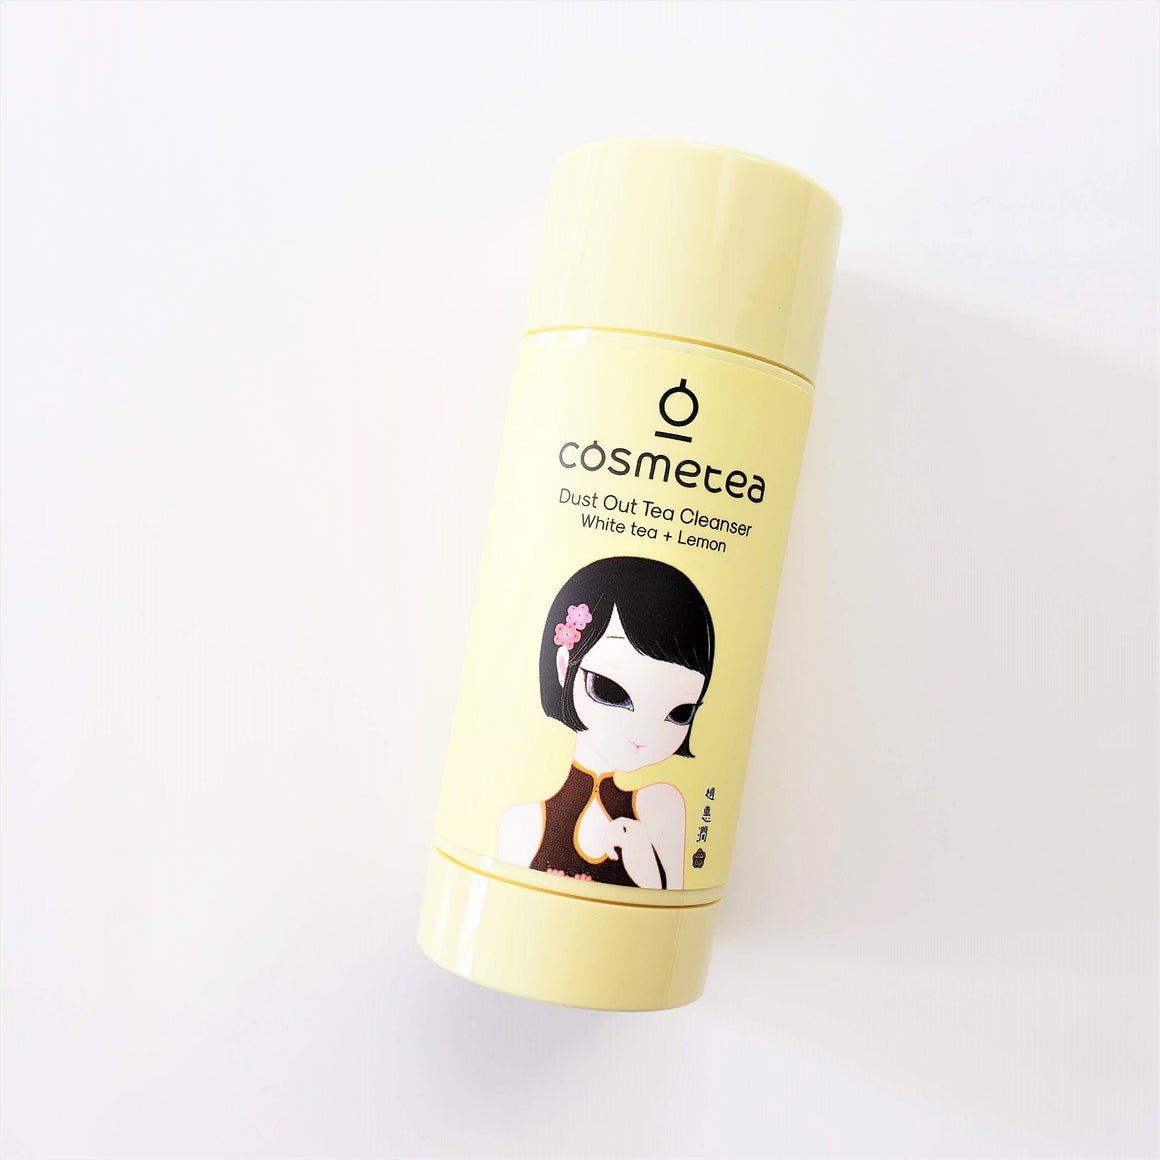 COSMETEA Dust Out Tea Cleanser - White Tea + Lemon